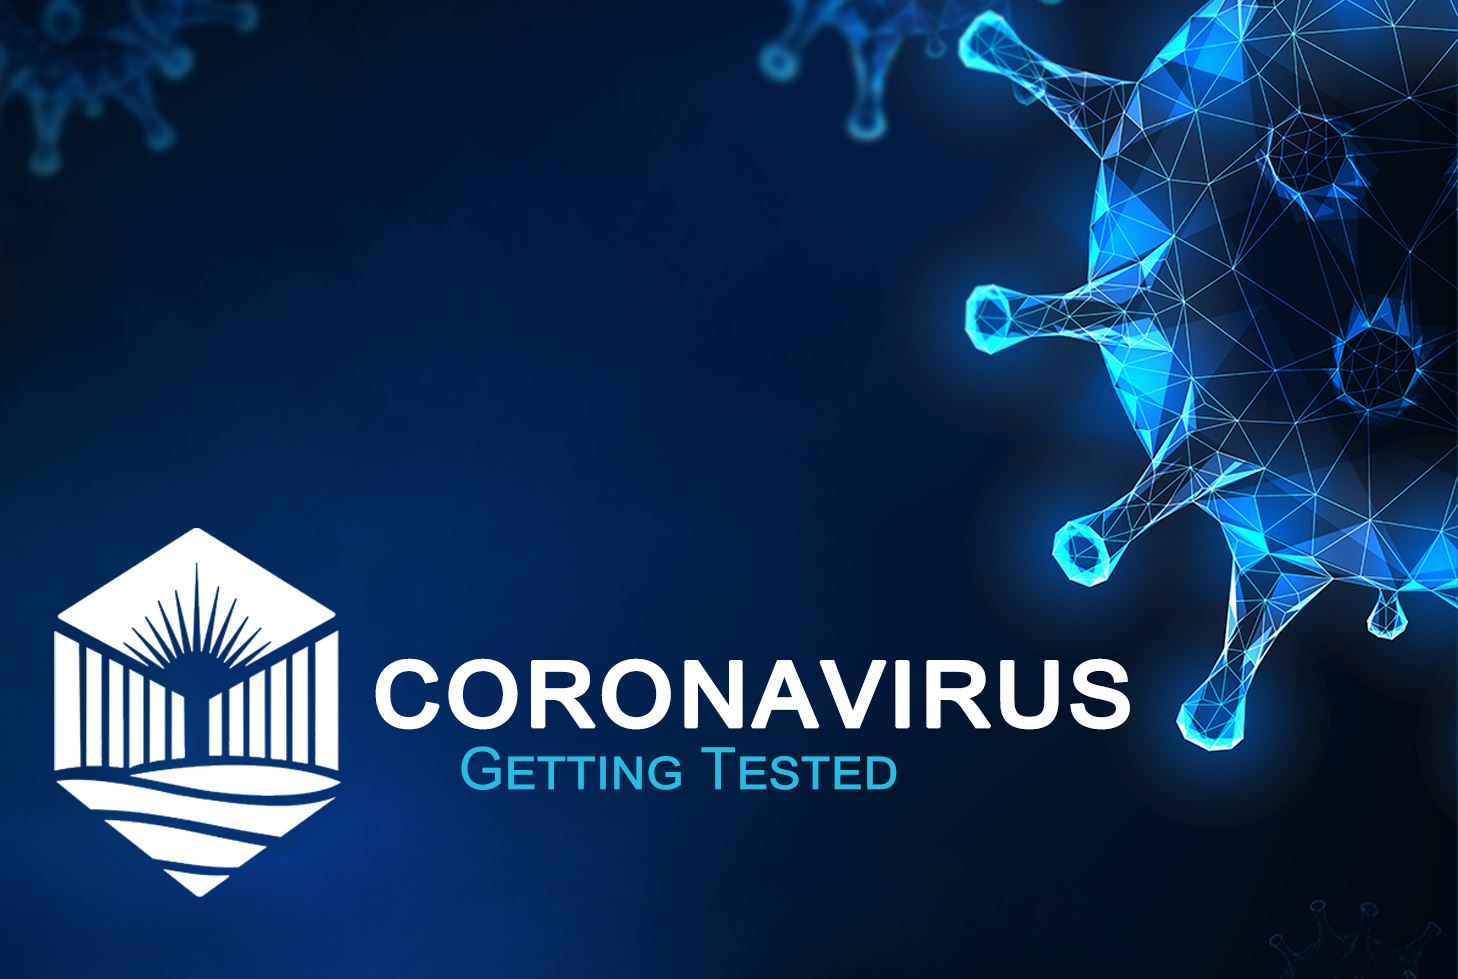 Coronavirus - City News -Getting Tested